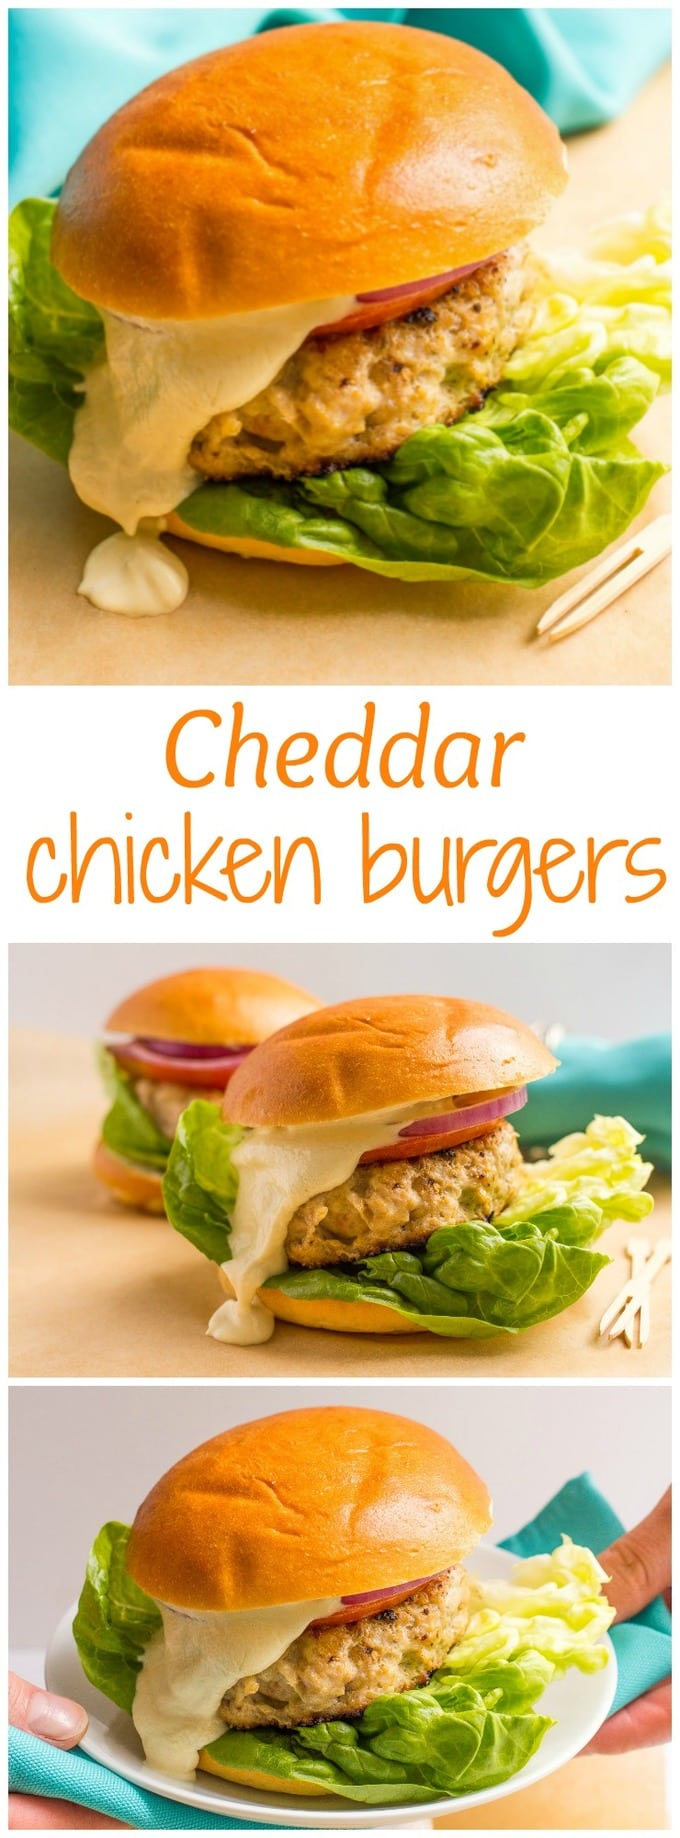 5-ingredient cheddar chicken burgers - BIG on flavor and take just 20 minutes - perfect for a quick weeknight dinner!